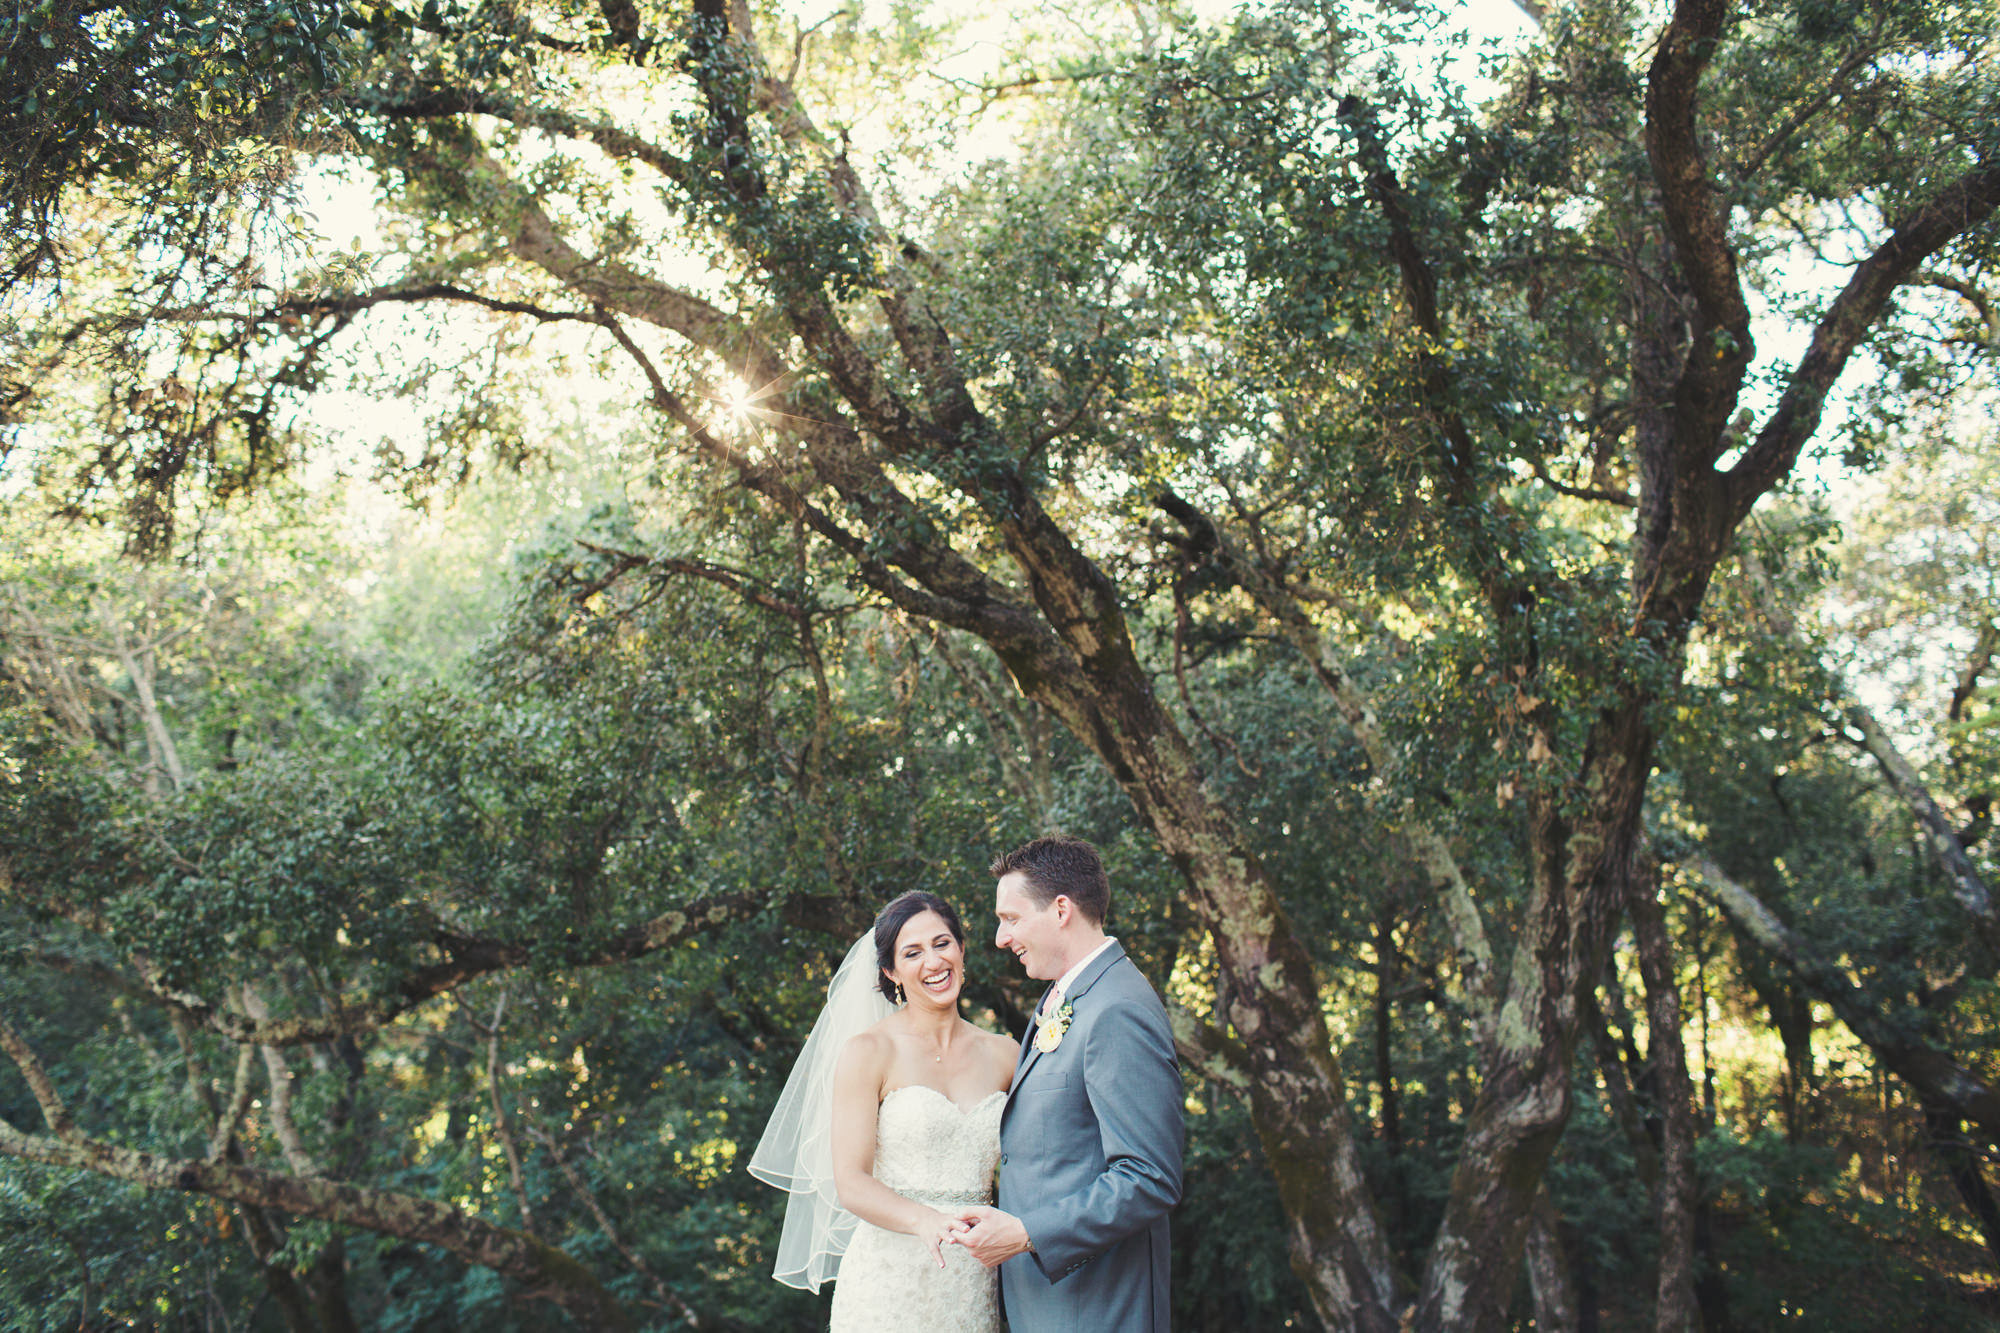 Backyard Wedding in California©Anne-Claire Brun 0024